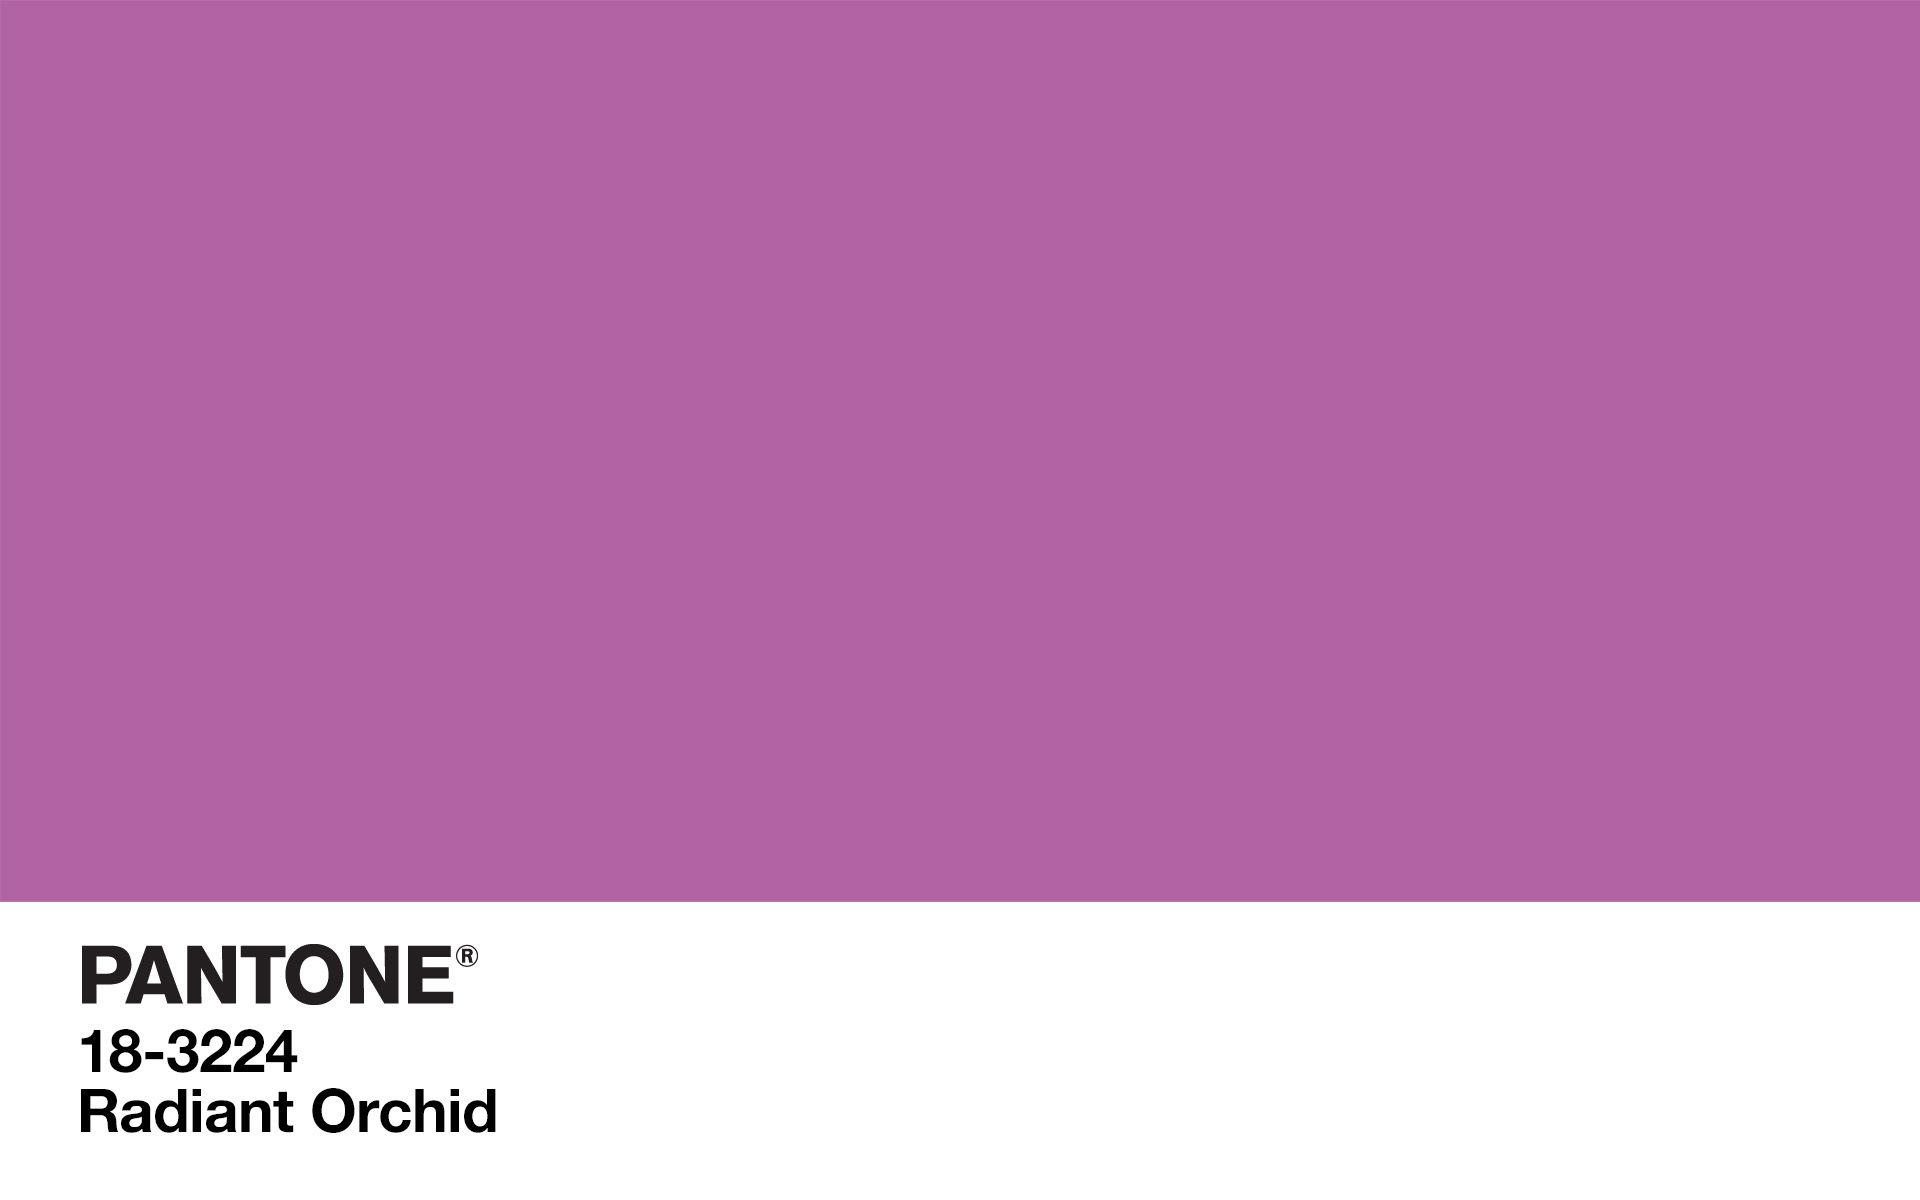 PANTONE 18-3224 Radiant Orchid (Color Of The Year, 2014